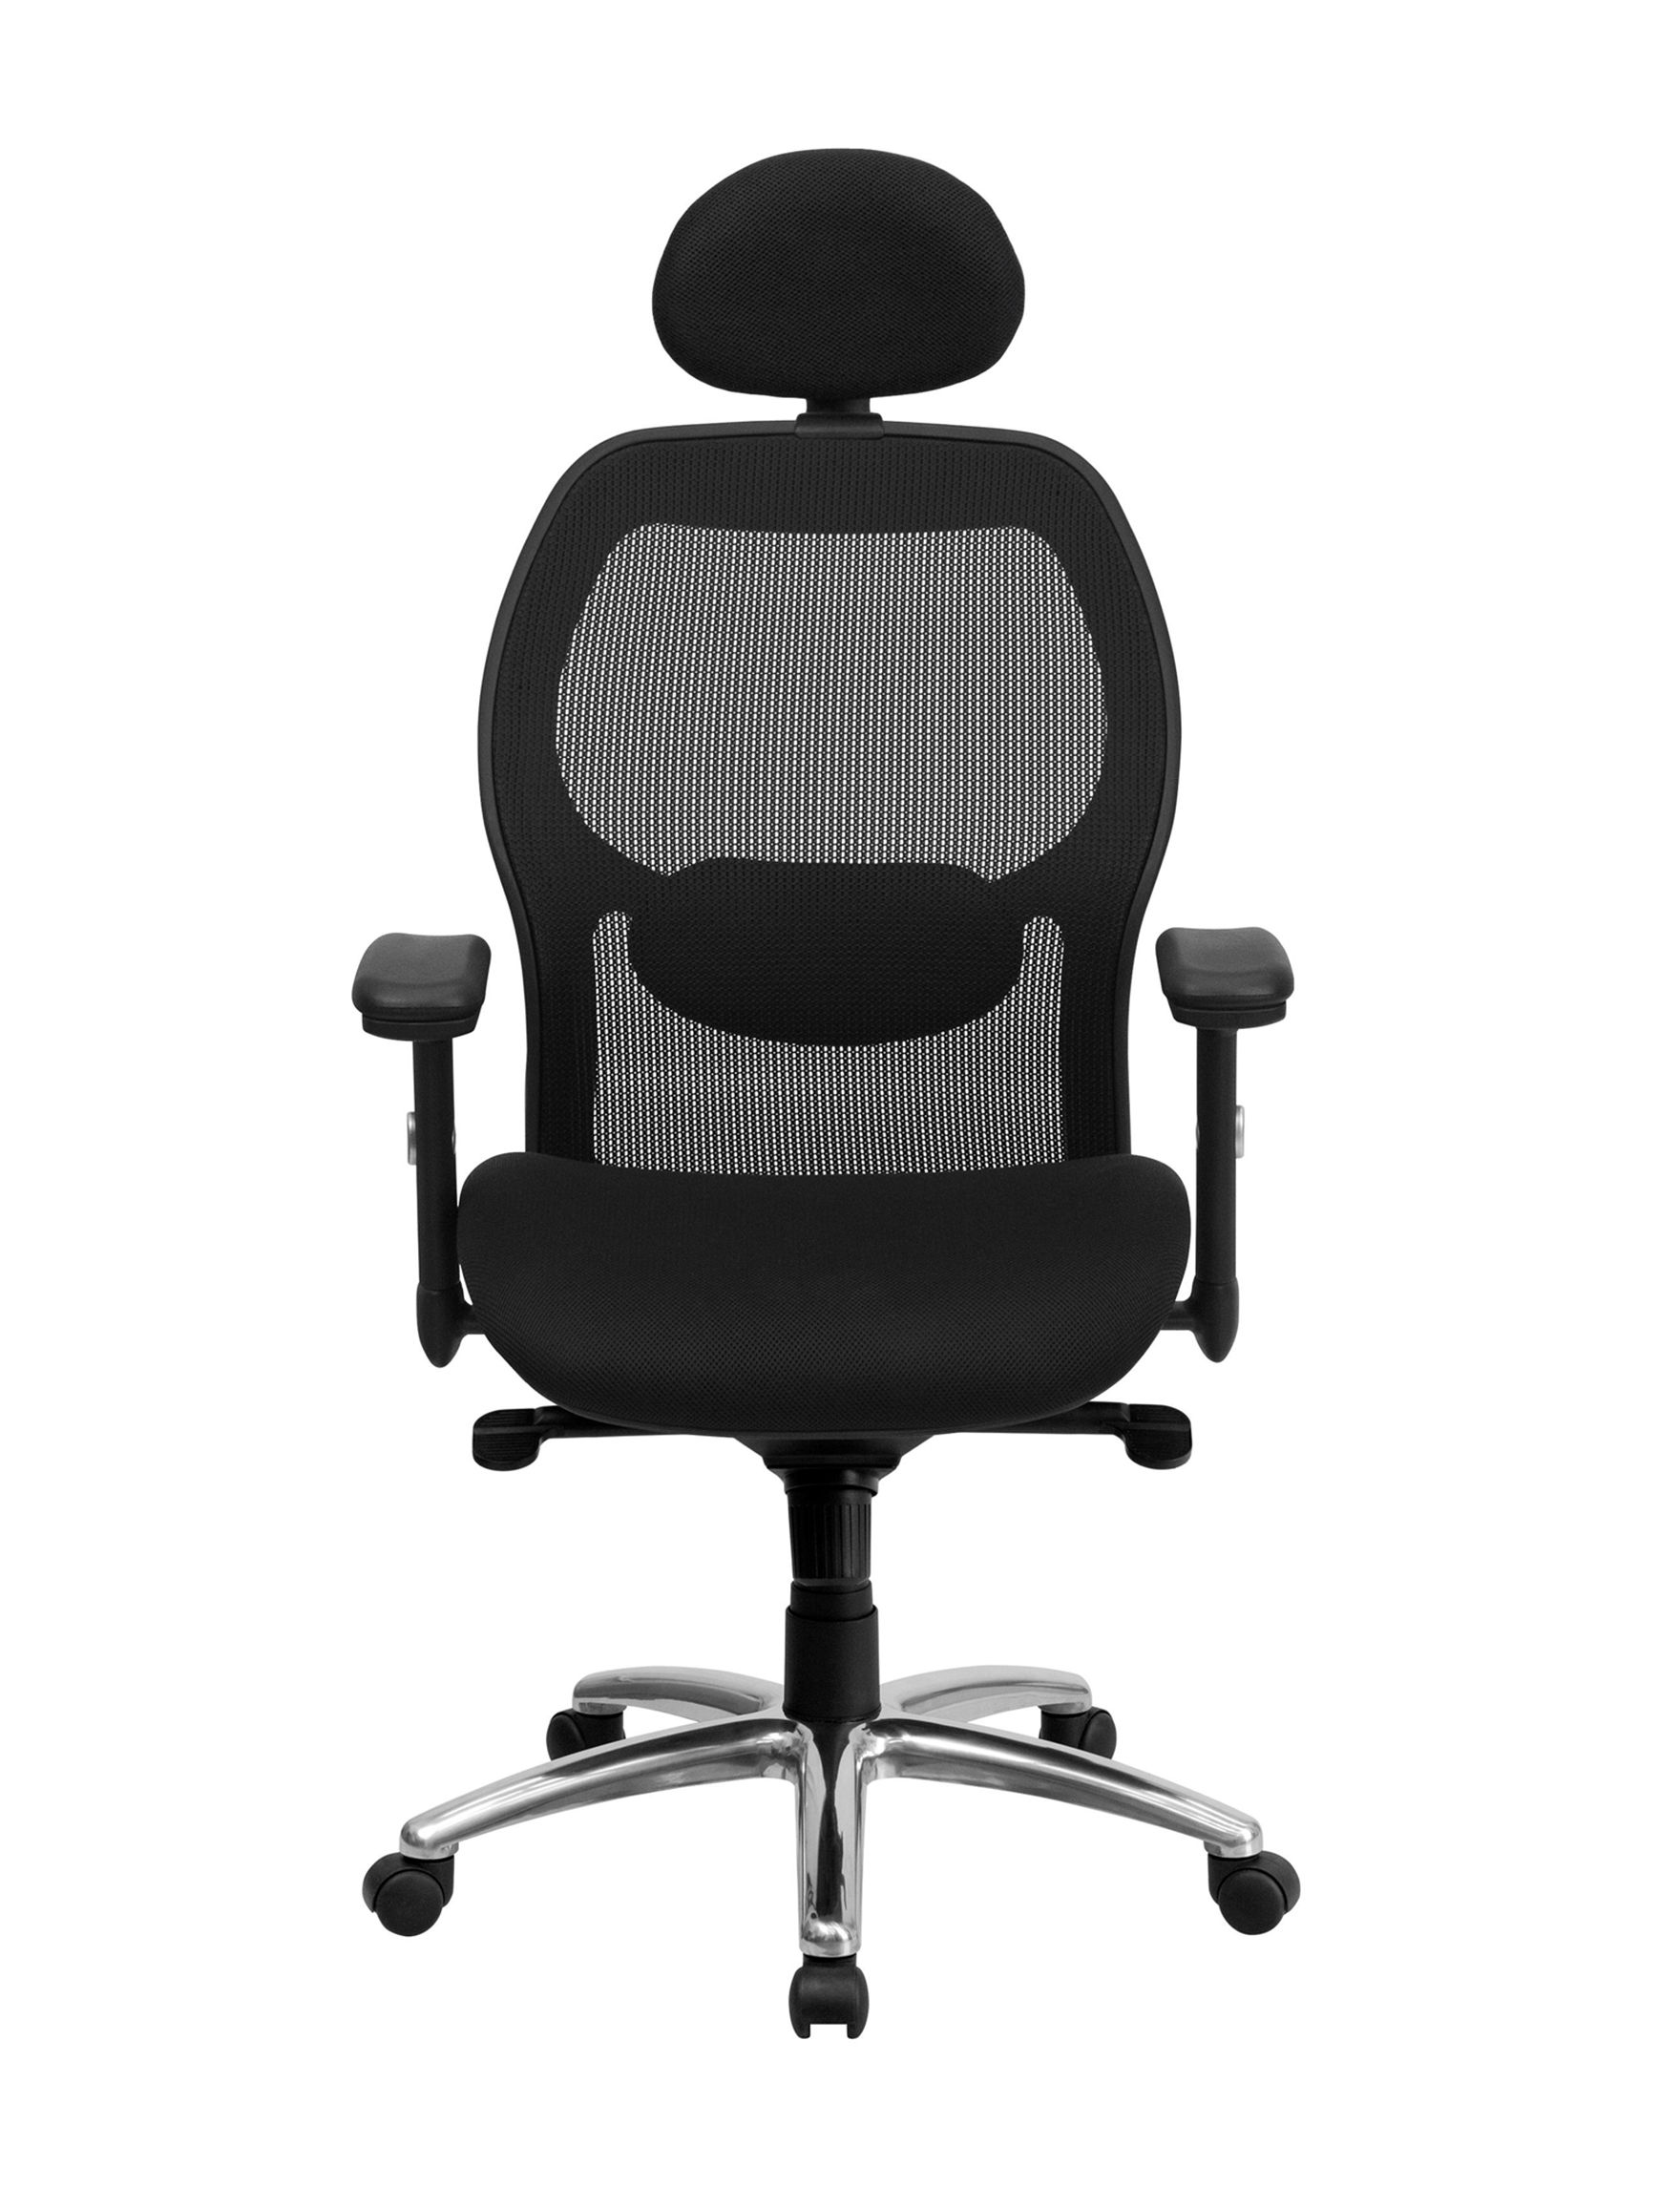 Flash Furniture Black Fabric Desk Chairs Office Chairs Home Office Furniture